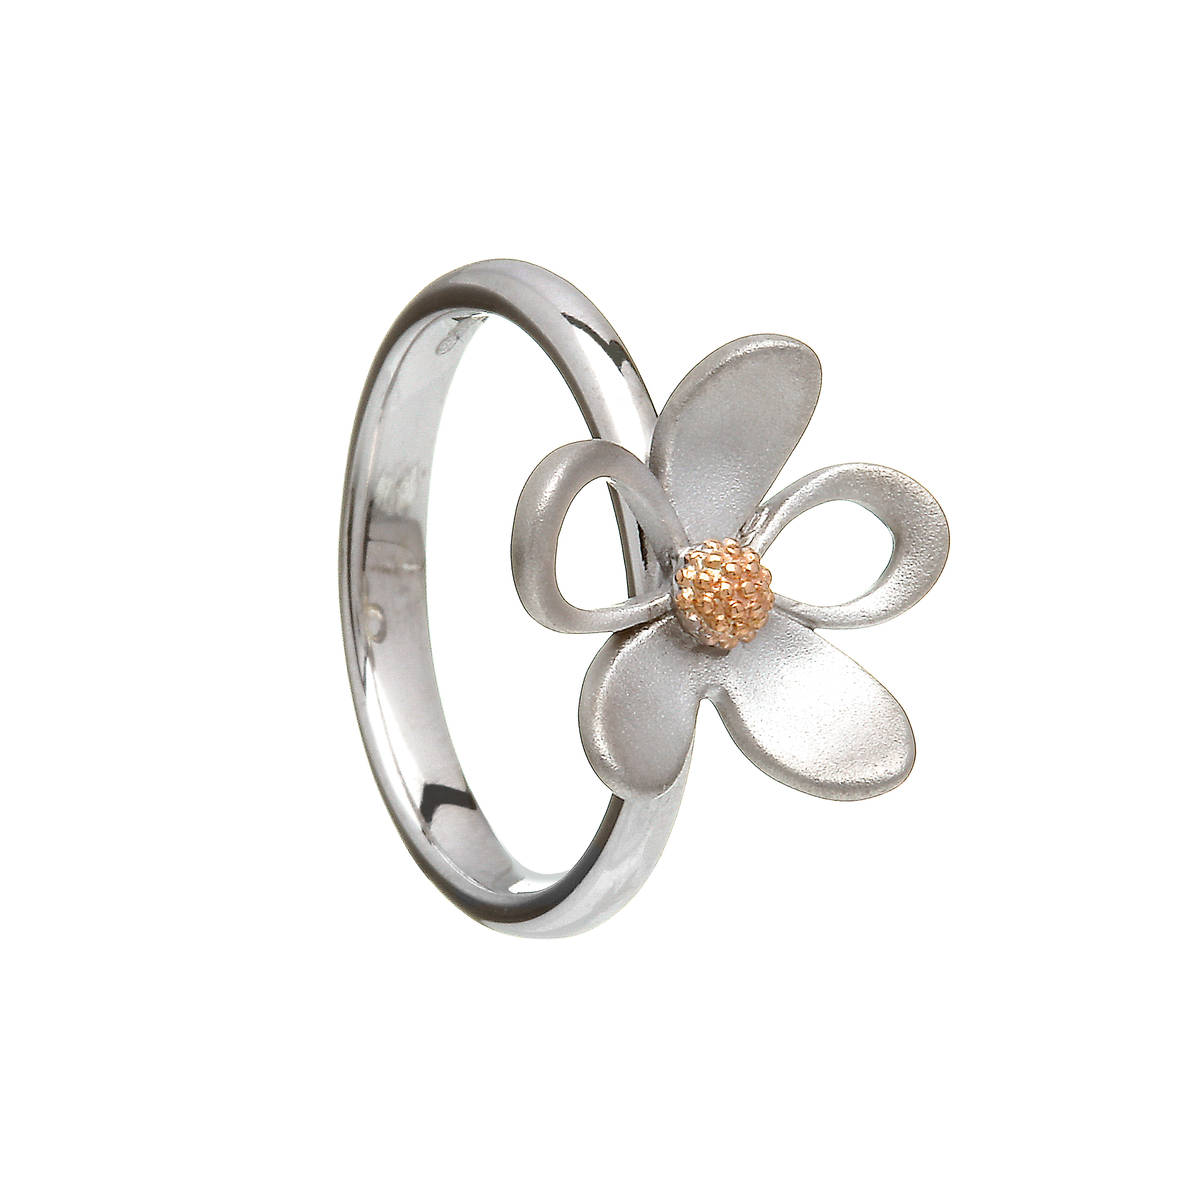 silver and rare Irish rose gold open and closed petal ring.